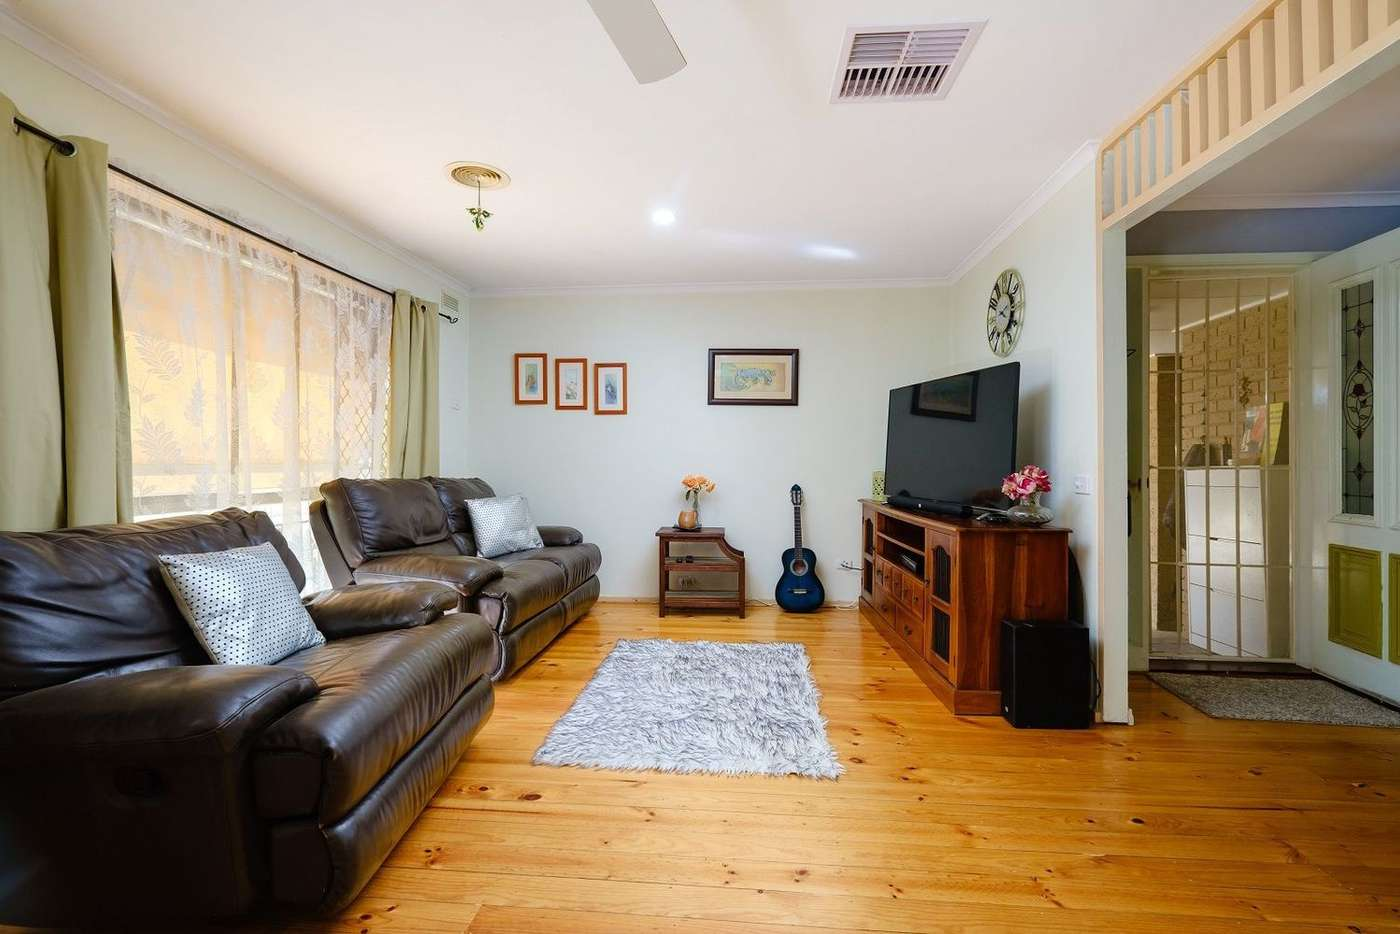 Main view of Homely house listing, 1 Drummond Court, Wodonga VIC 3690